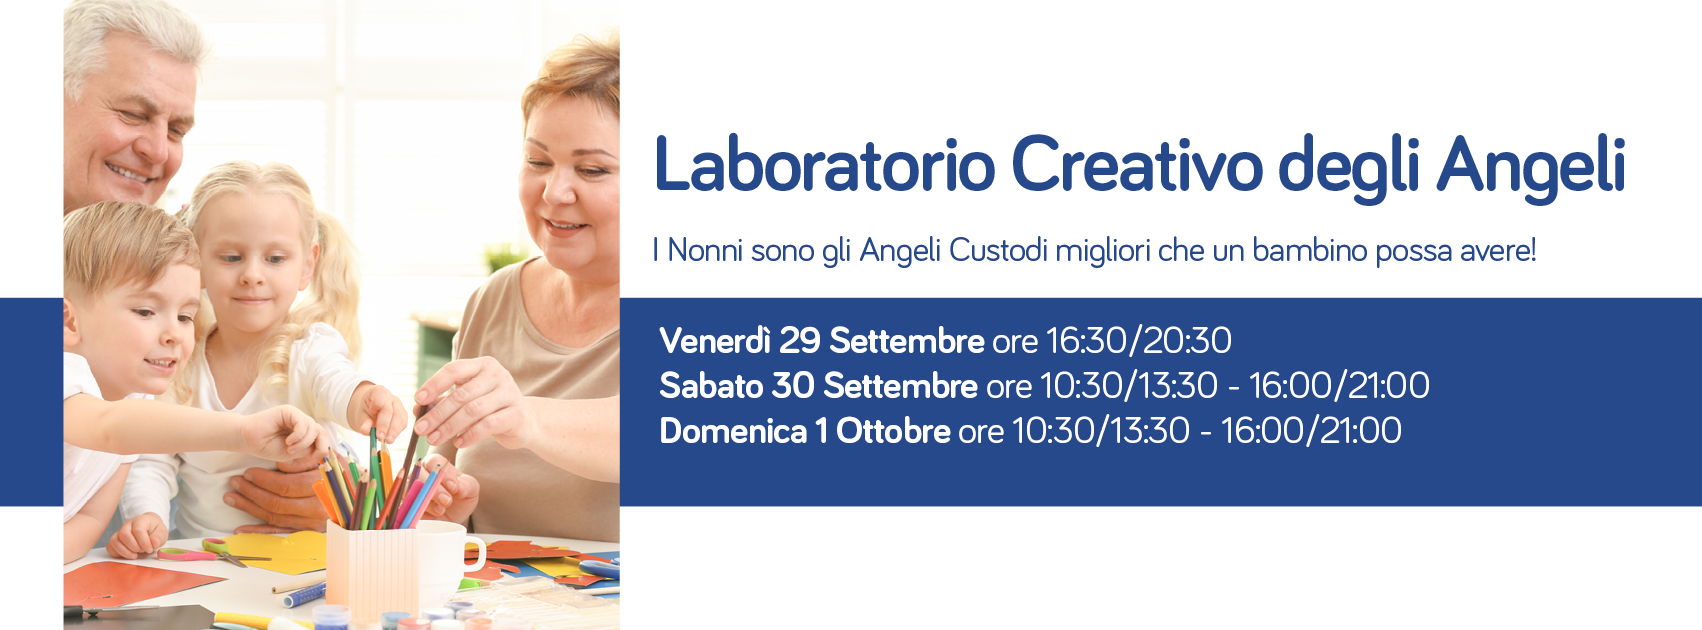 Laboratorio creativo degli angeli